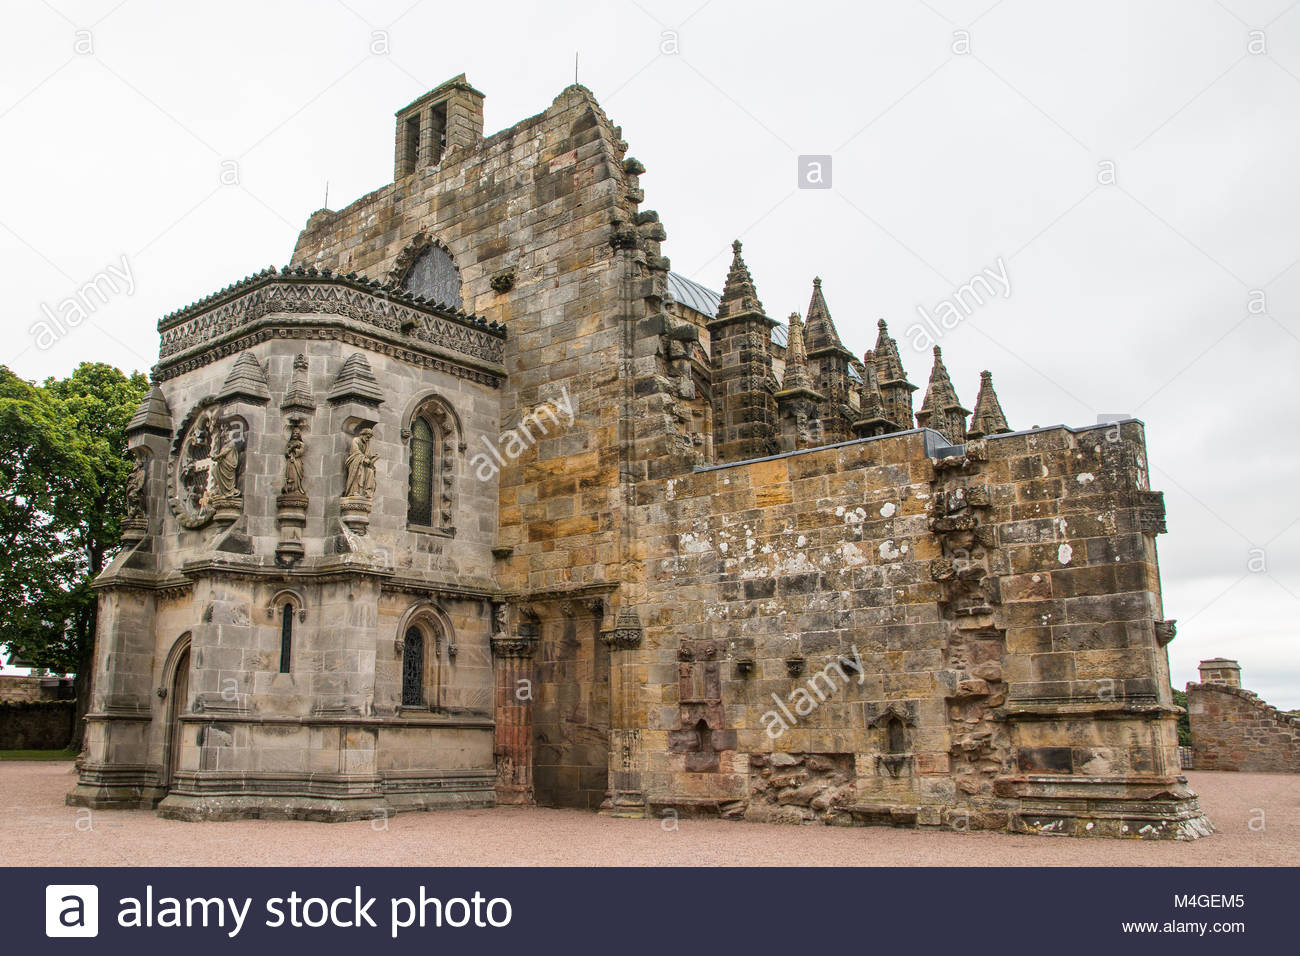 Roslyn Chapel from the Da Vinci Code, British Isles - Stock Image